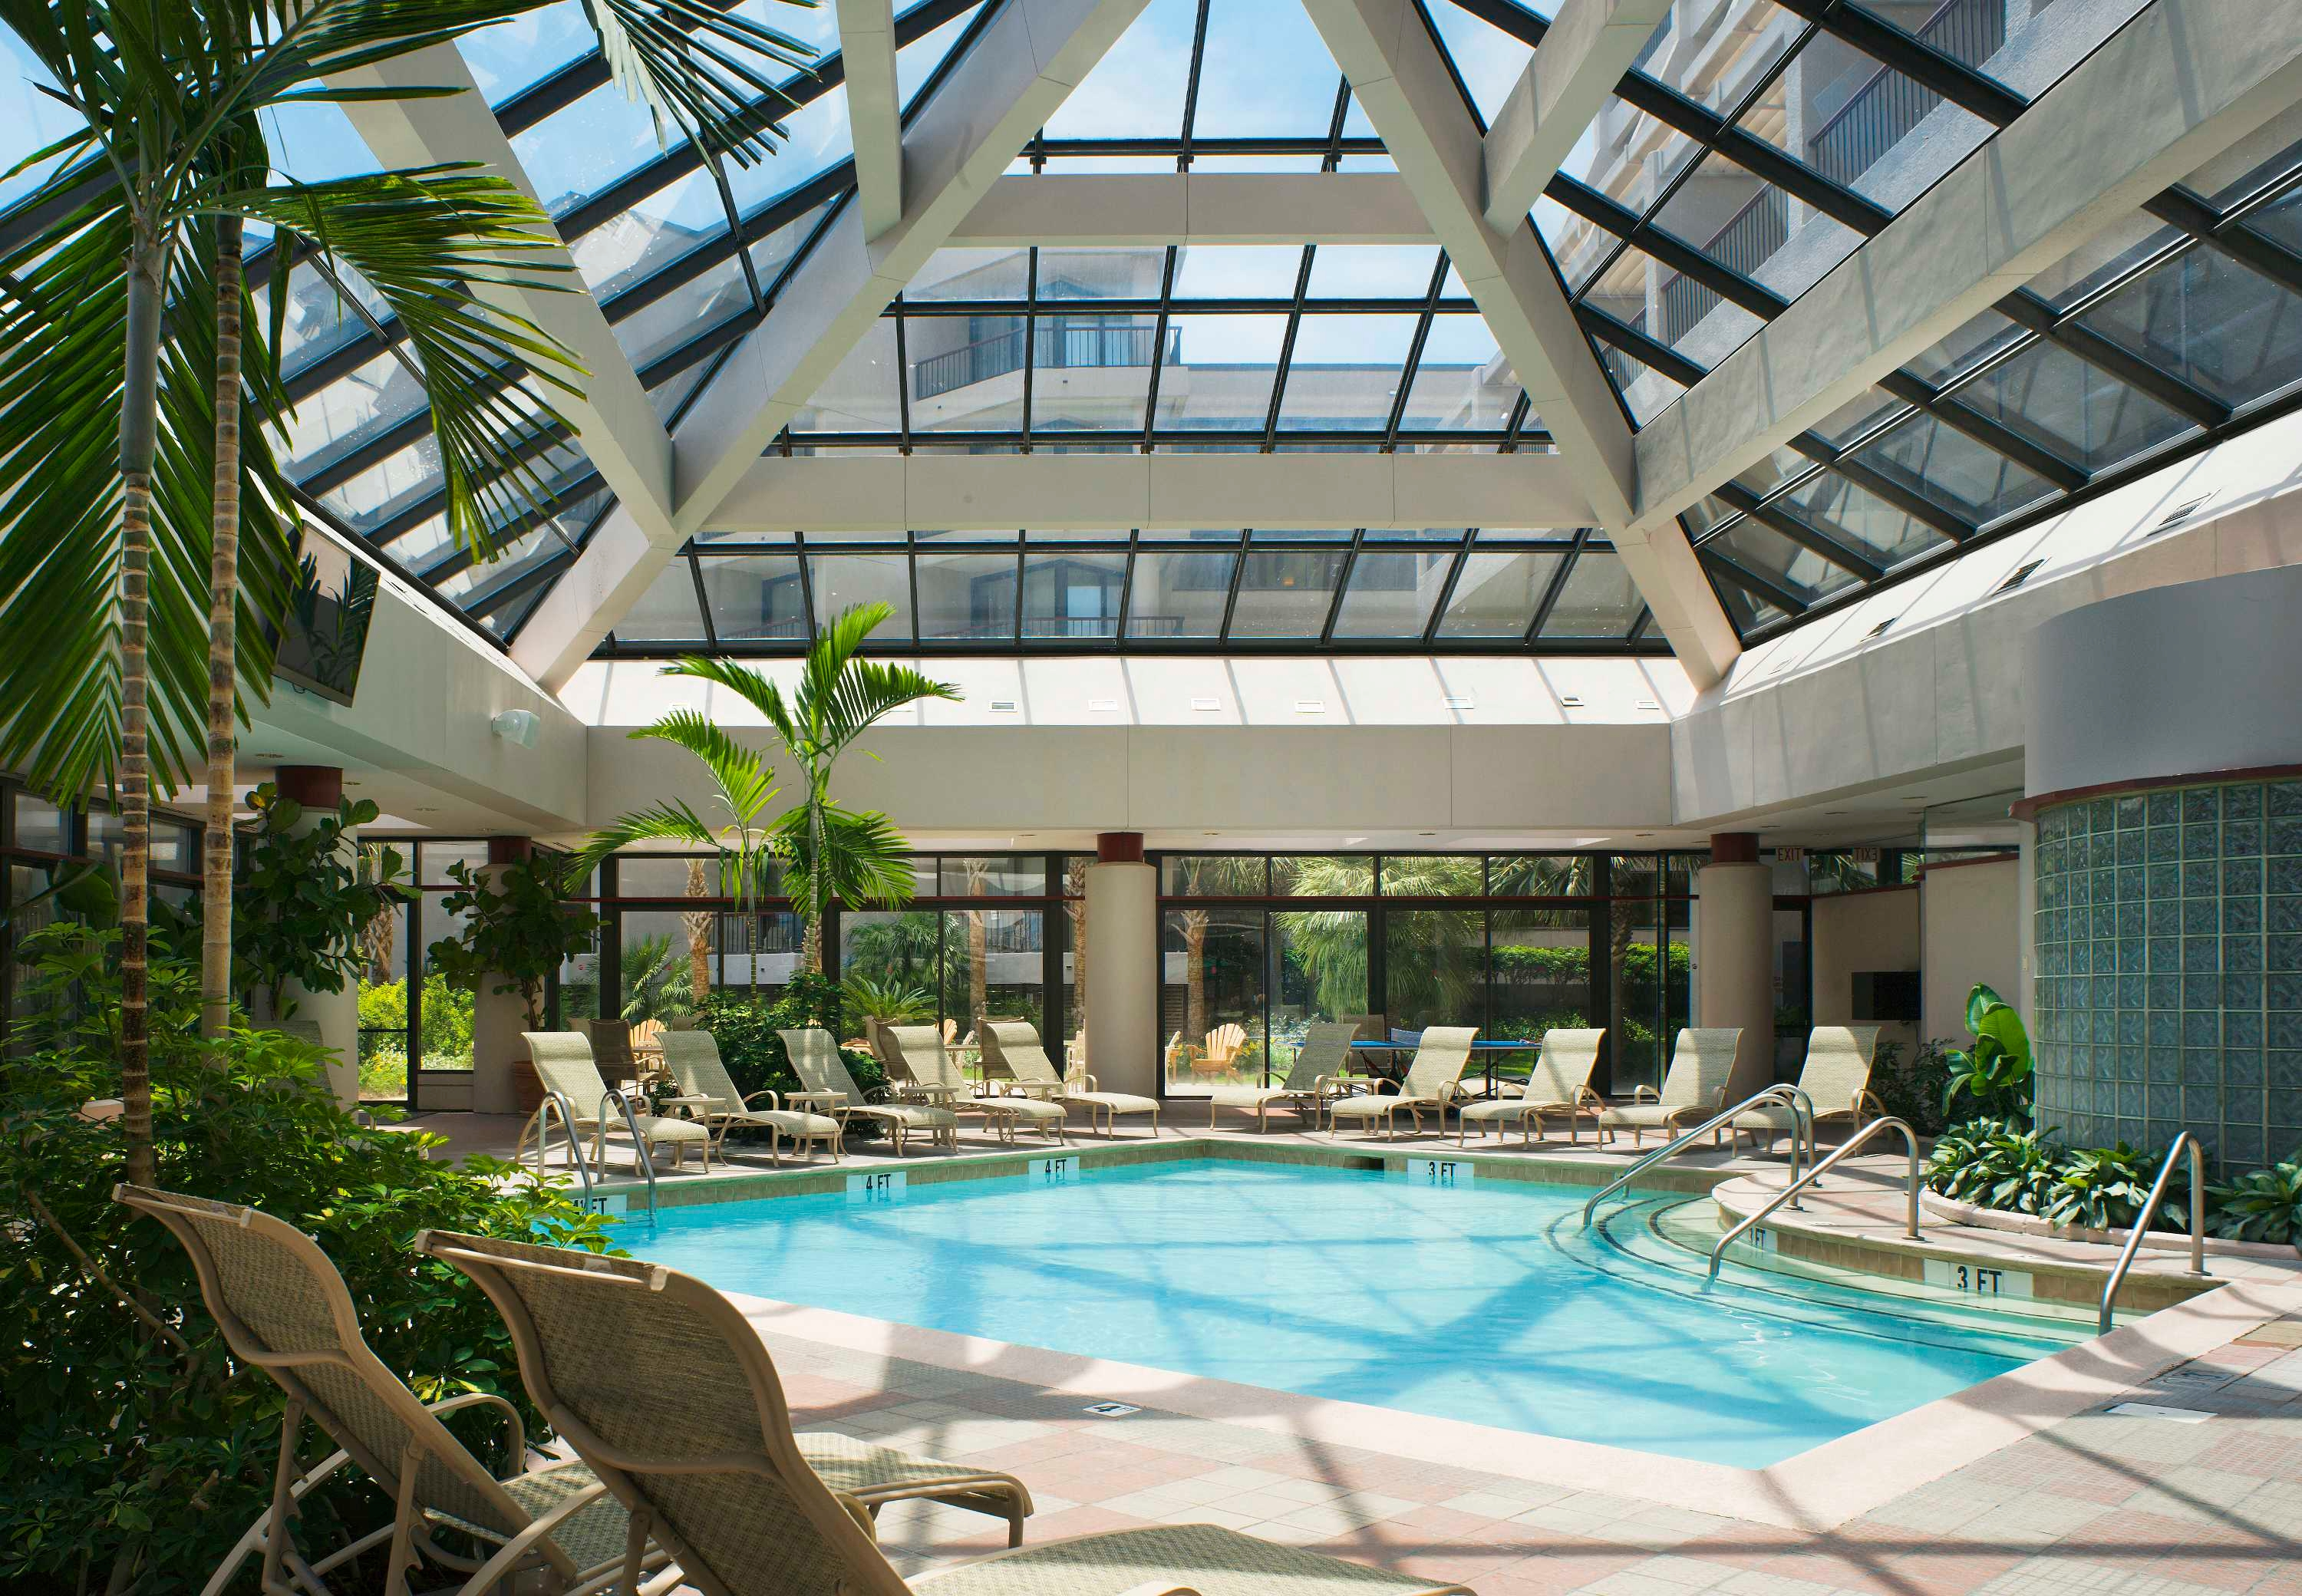 Hilton head marriott resort spa coupons near me in for Hotel spa resort near me